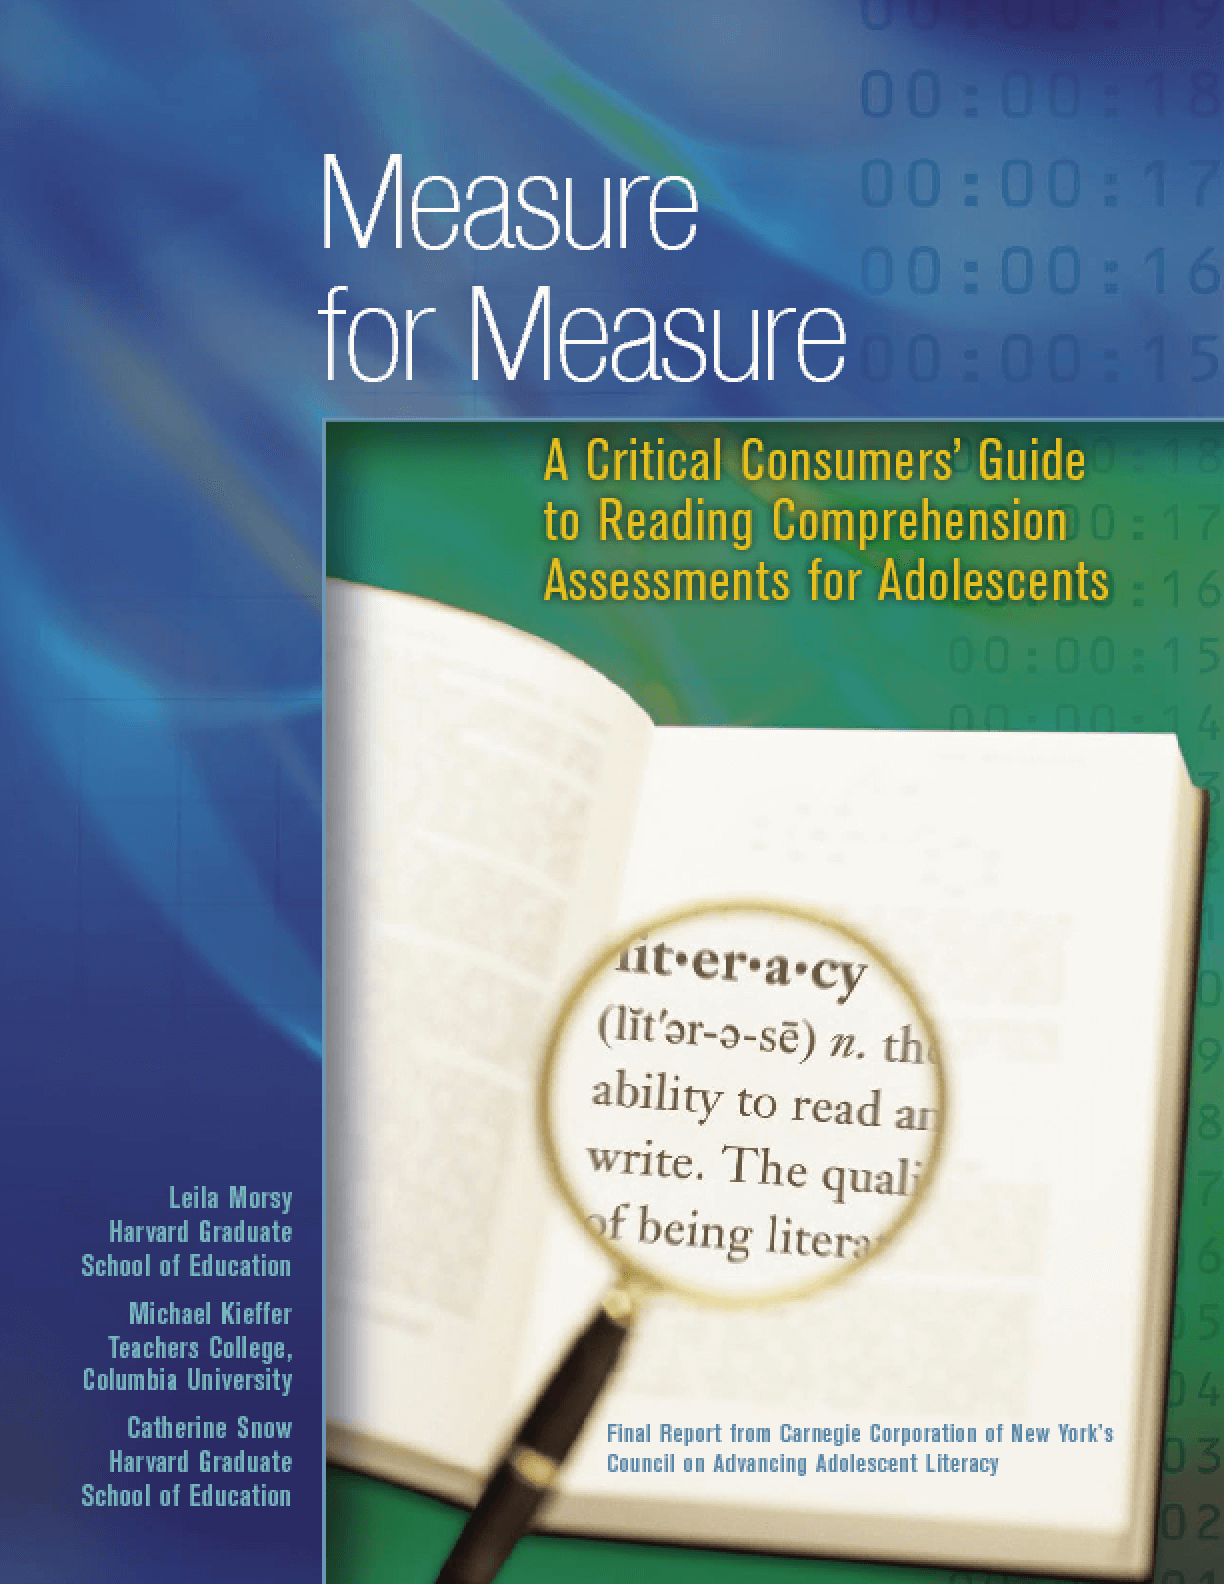 Measure for Measure: A Critical Consumers' Guide to Reading Comprehension Assessments for Adolescents